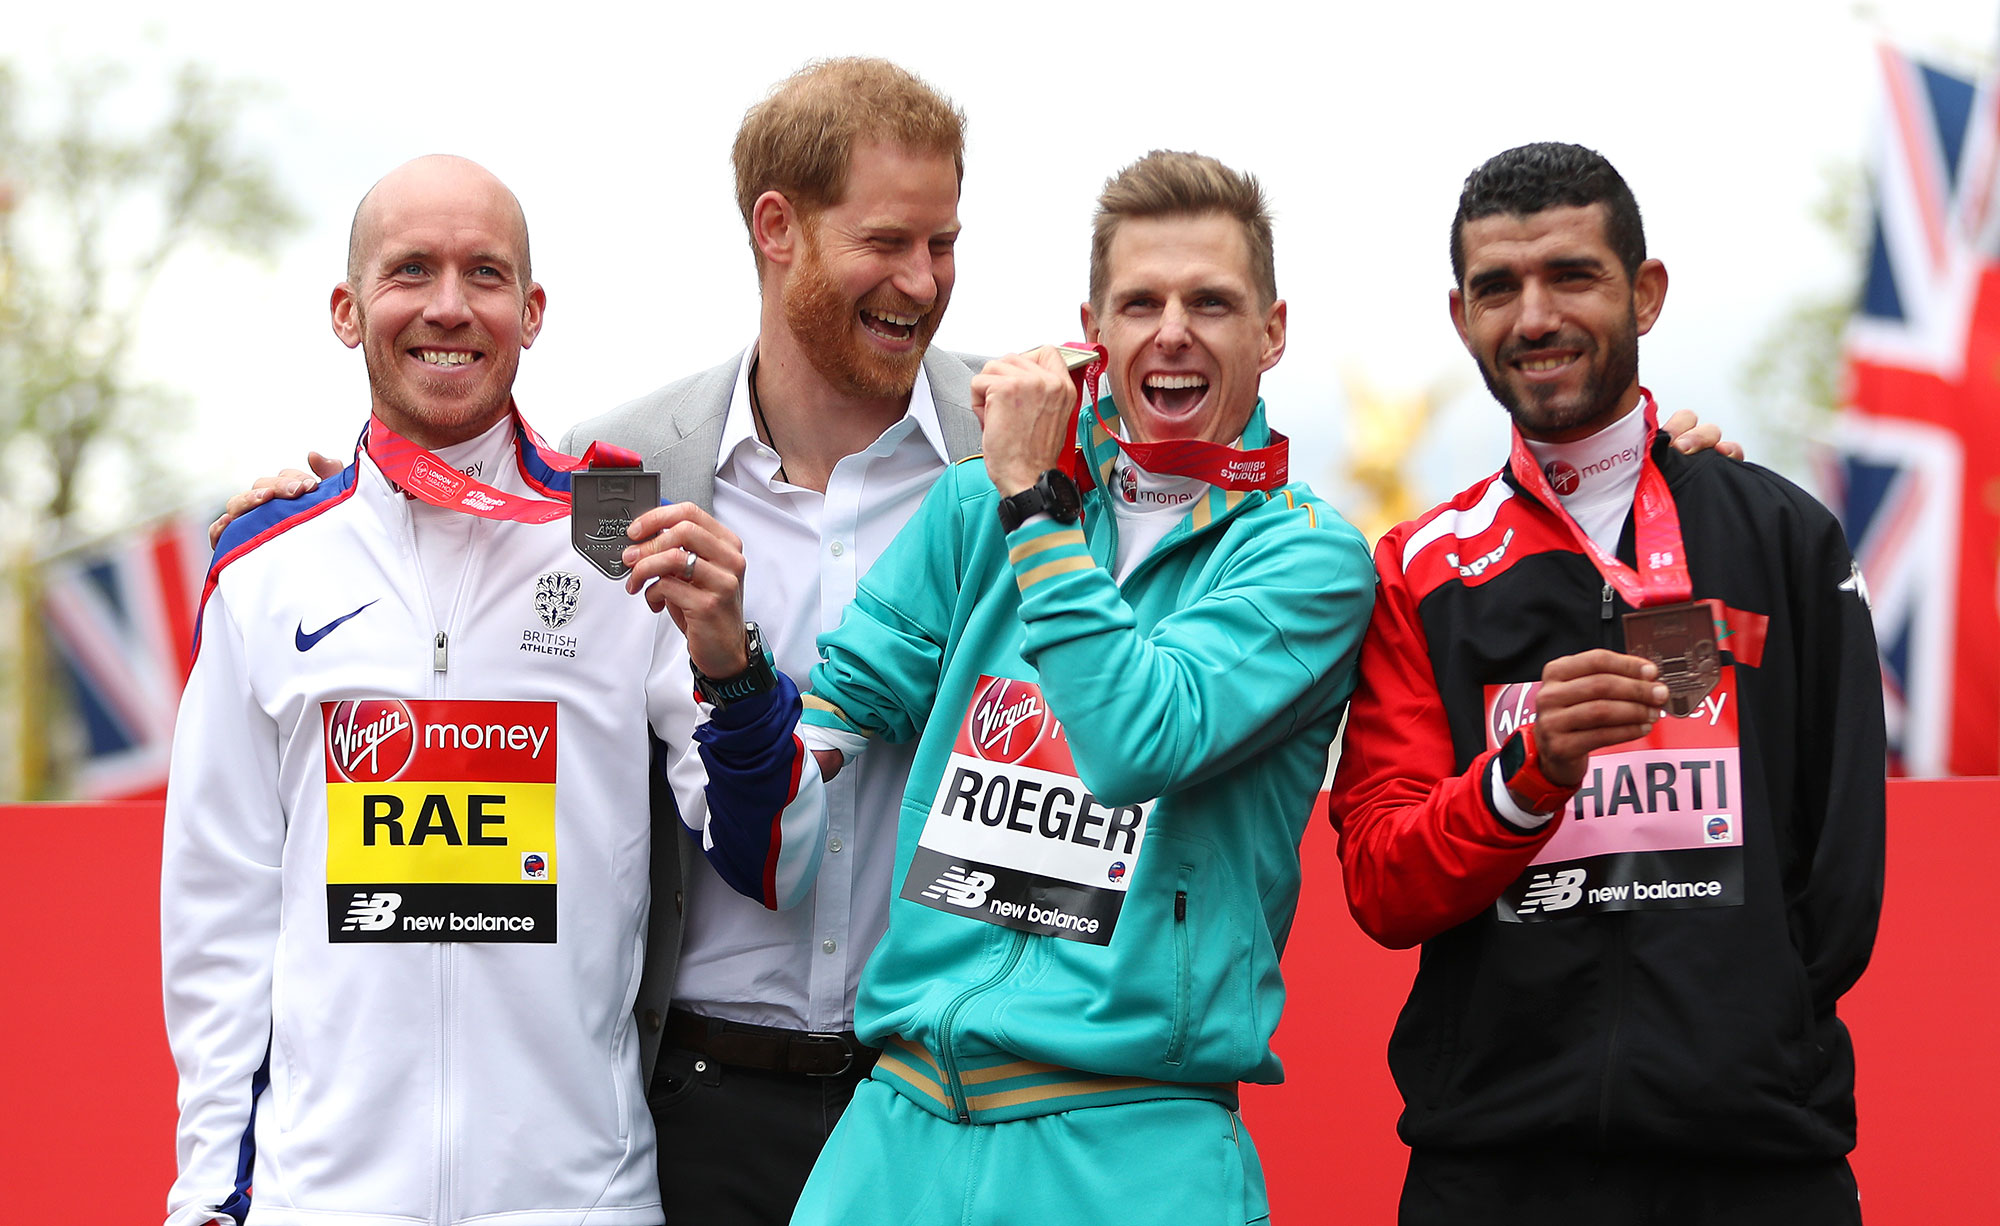 Derek Rae of Great Britain (2nd), Michael Roger of Australia (1st) and Abdehadi El Harti of Morocco (3rd) all celebrate their respective finishing positions in the T46 Men's race with Prince Harry, Duke of Sussex